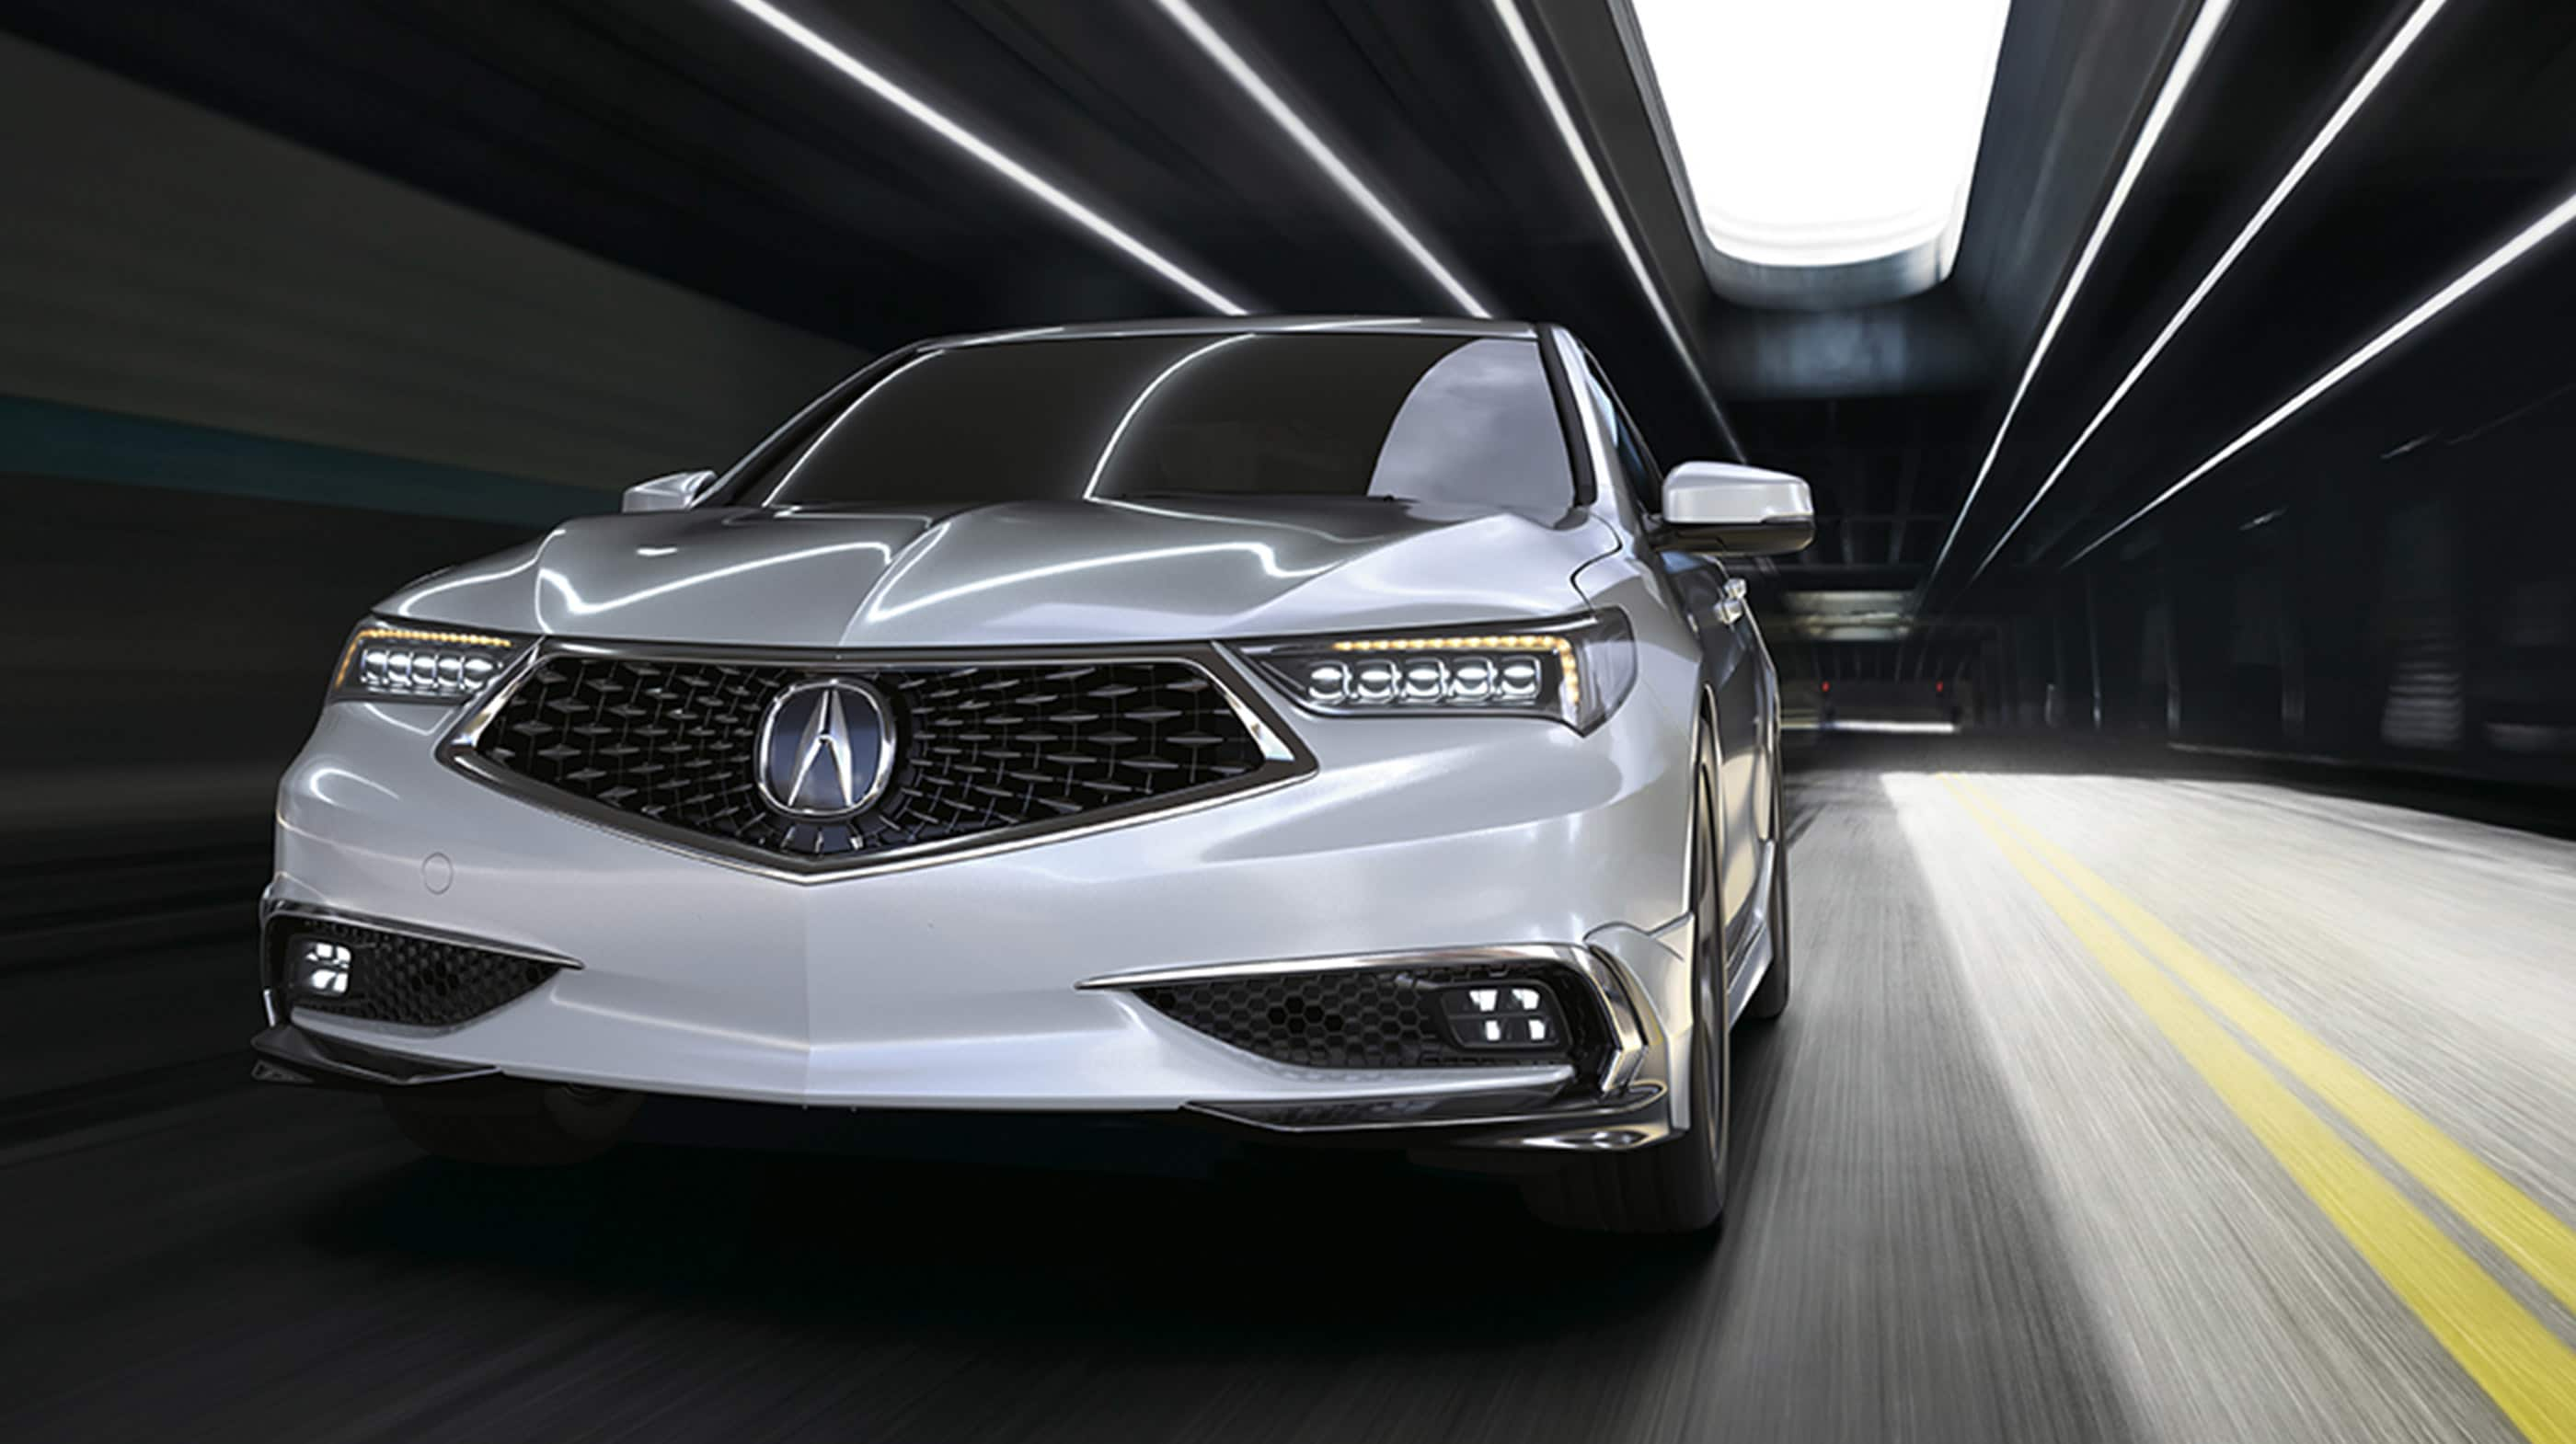 62 Concept of Acura Tlx 2020 Lease Wallpaper for Acura Tlx 2020 Lease